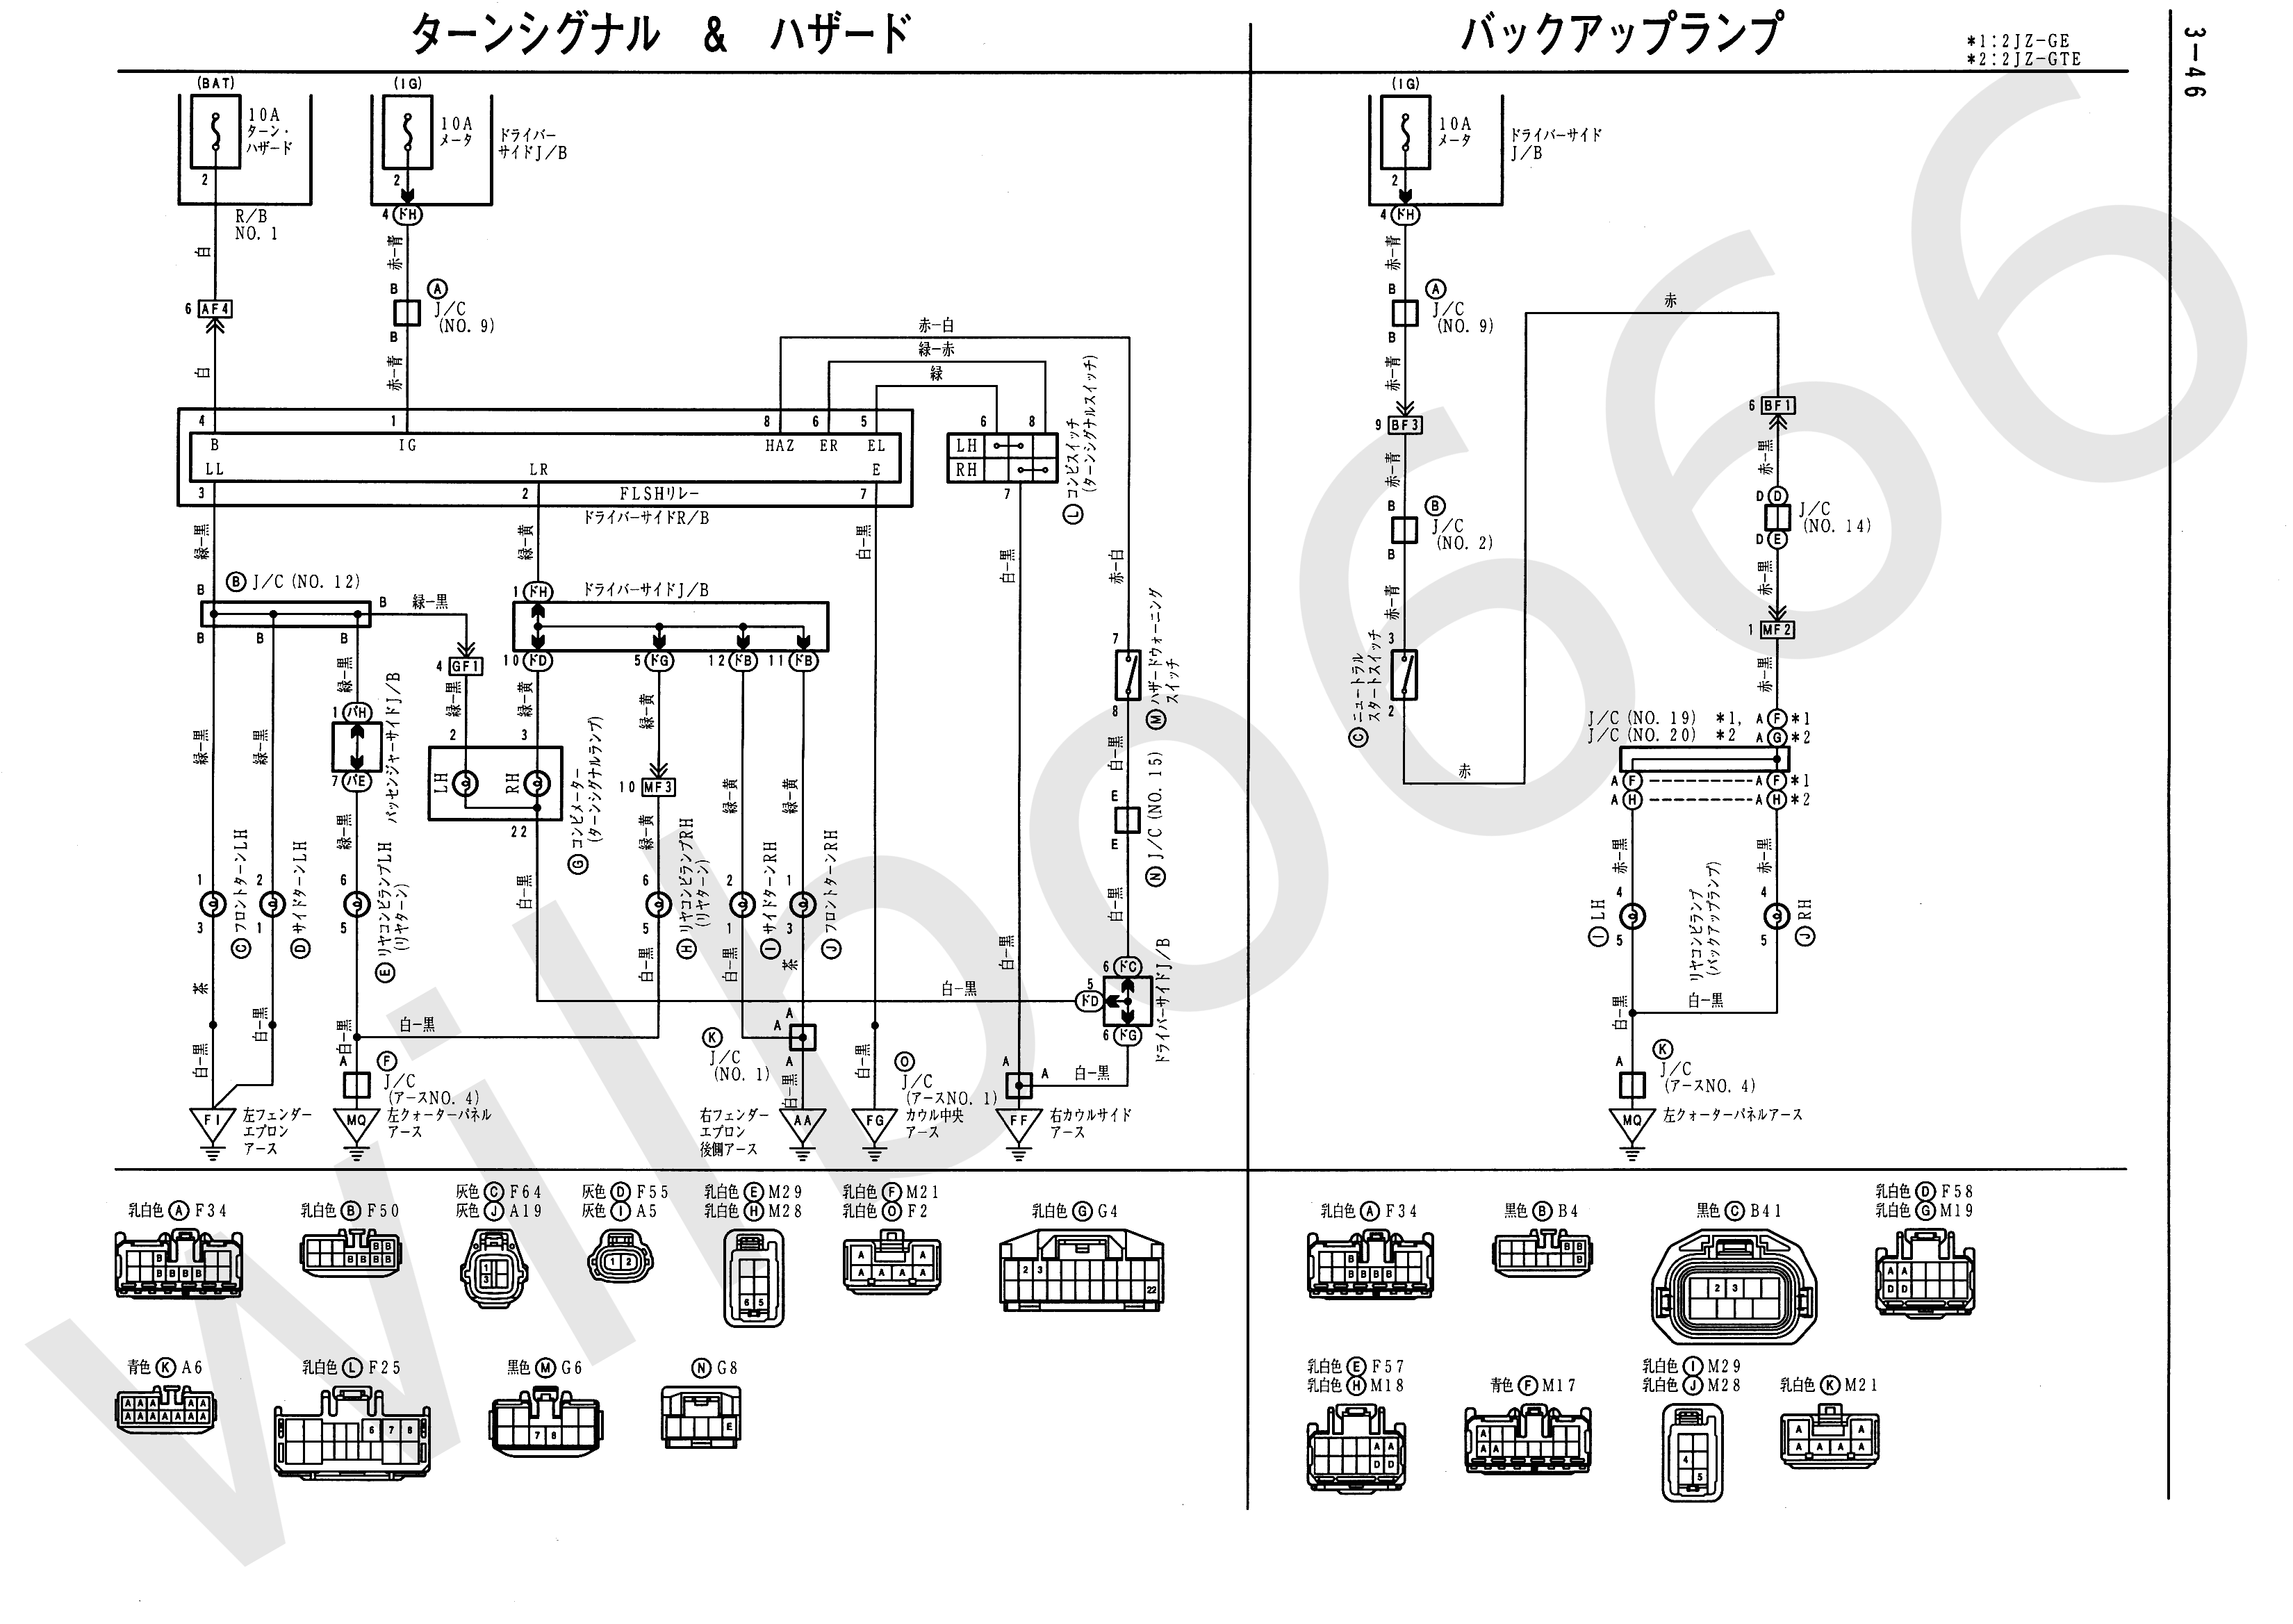 1jzgte vvti alternator wiring diagram 1998 ford taurus cooling system wilbo666 2jz gte jzs161 aristo engine